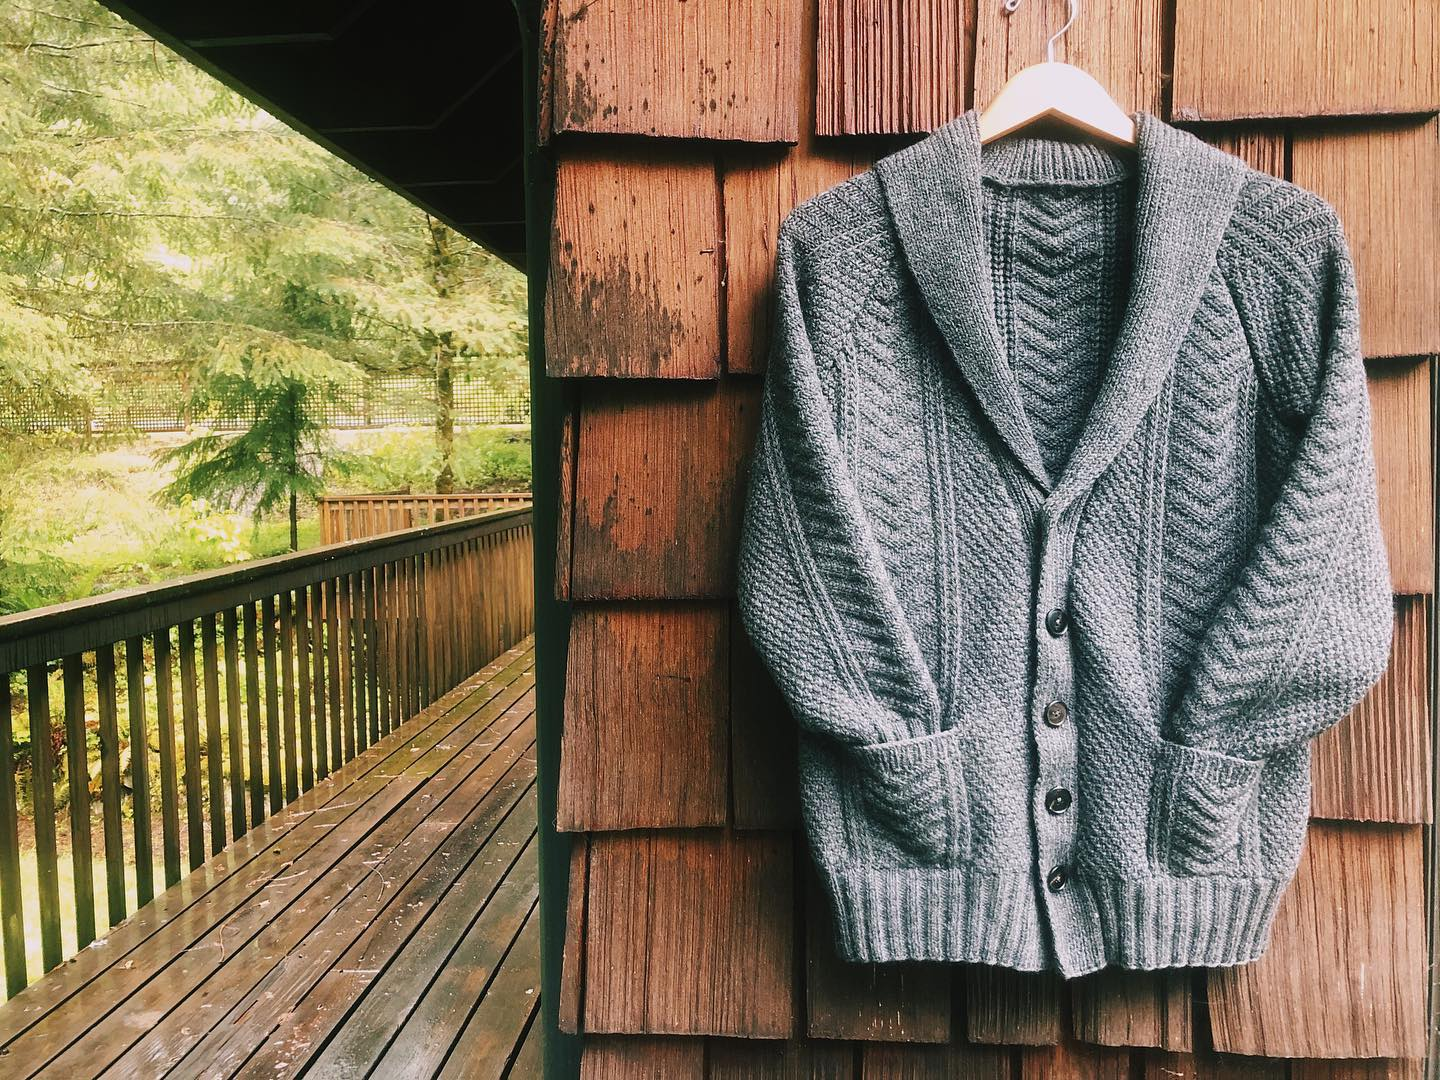 An image of a grey textured cardigan with a shawl collar and sleeves shoved into pockets, hung on a hanger against the cedar shakes on the corner of a cabin. The background is very green and springlike.